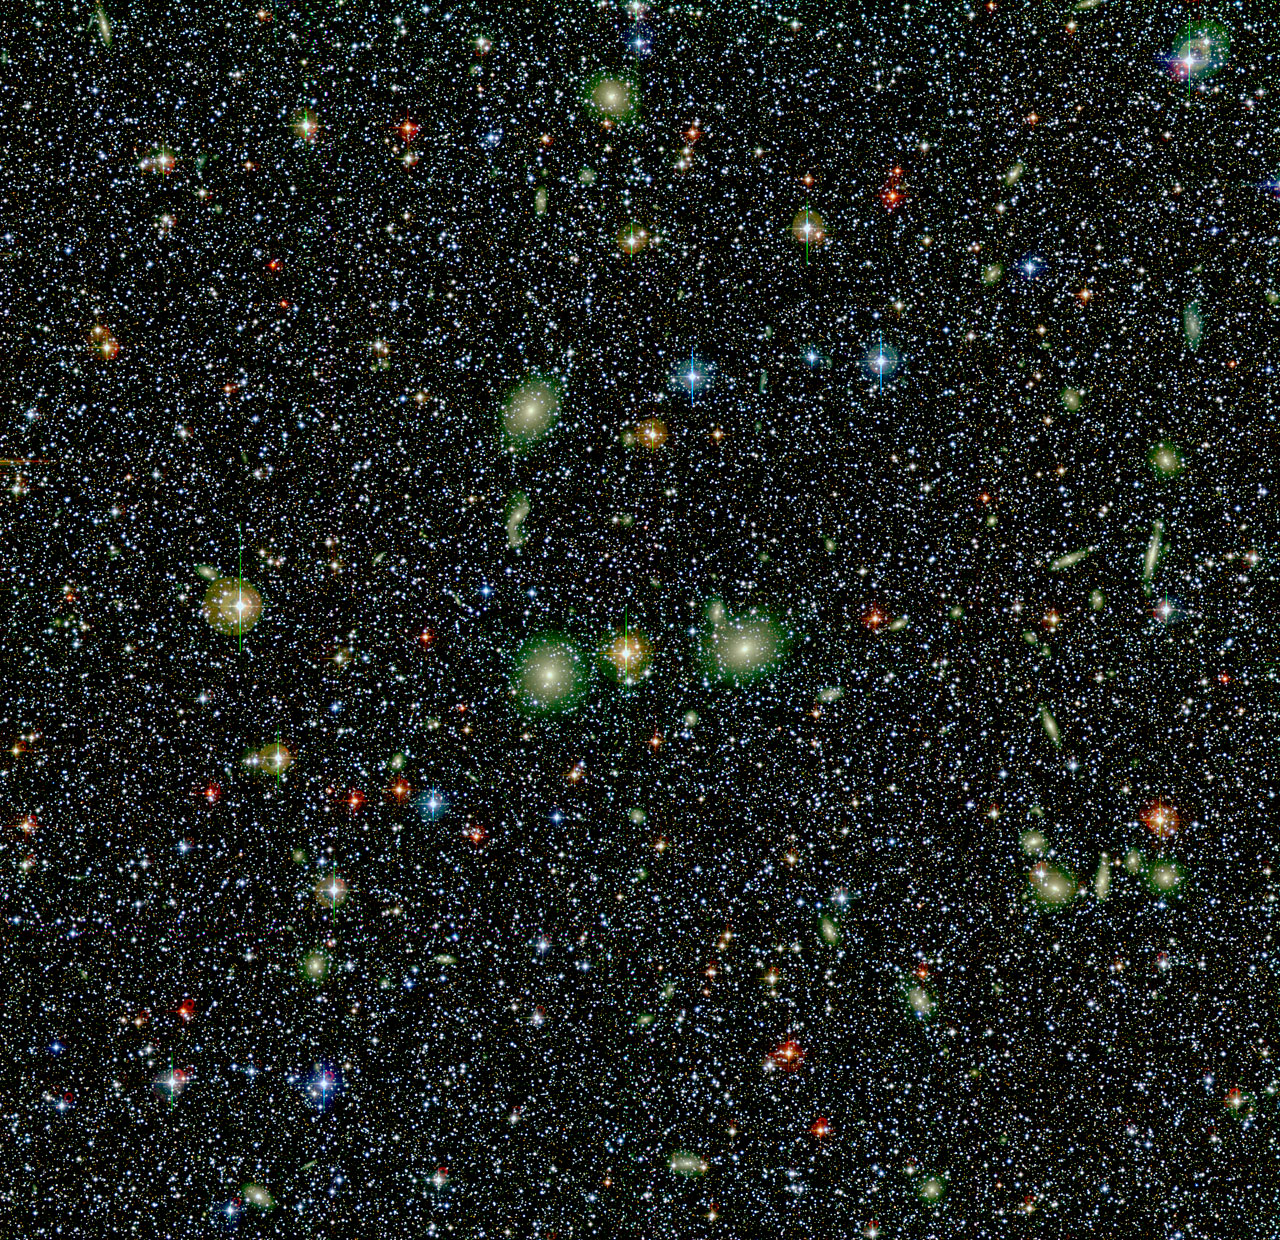 View_Towards_the_Great_Attractor.jpg